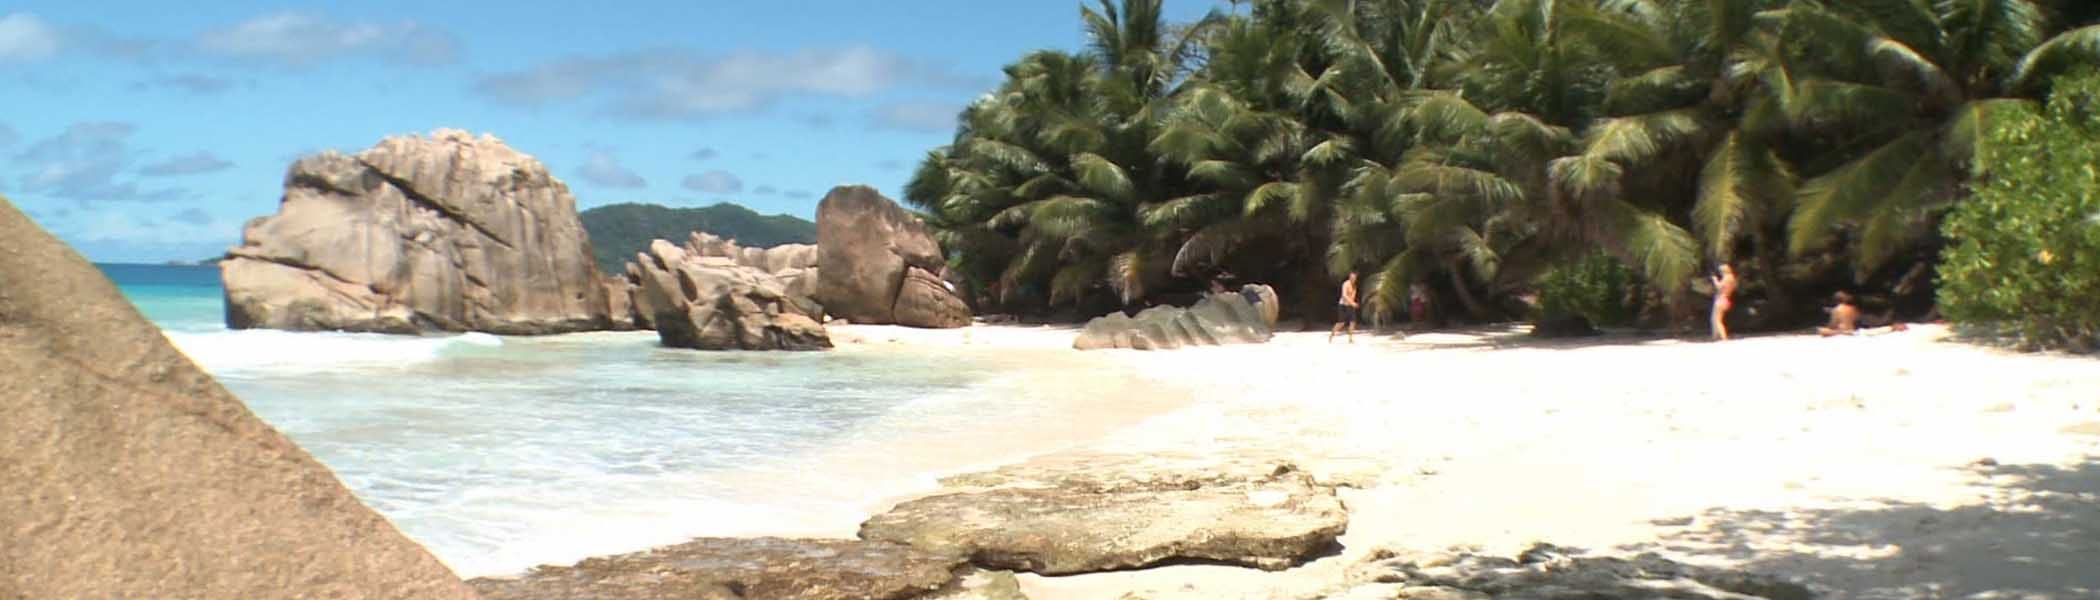 anse-patates, Beaches in Seychelles Islands